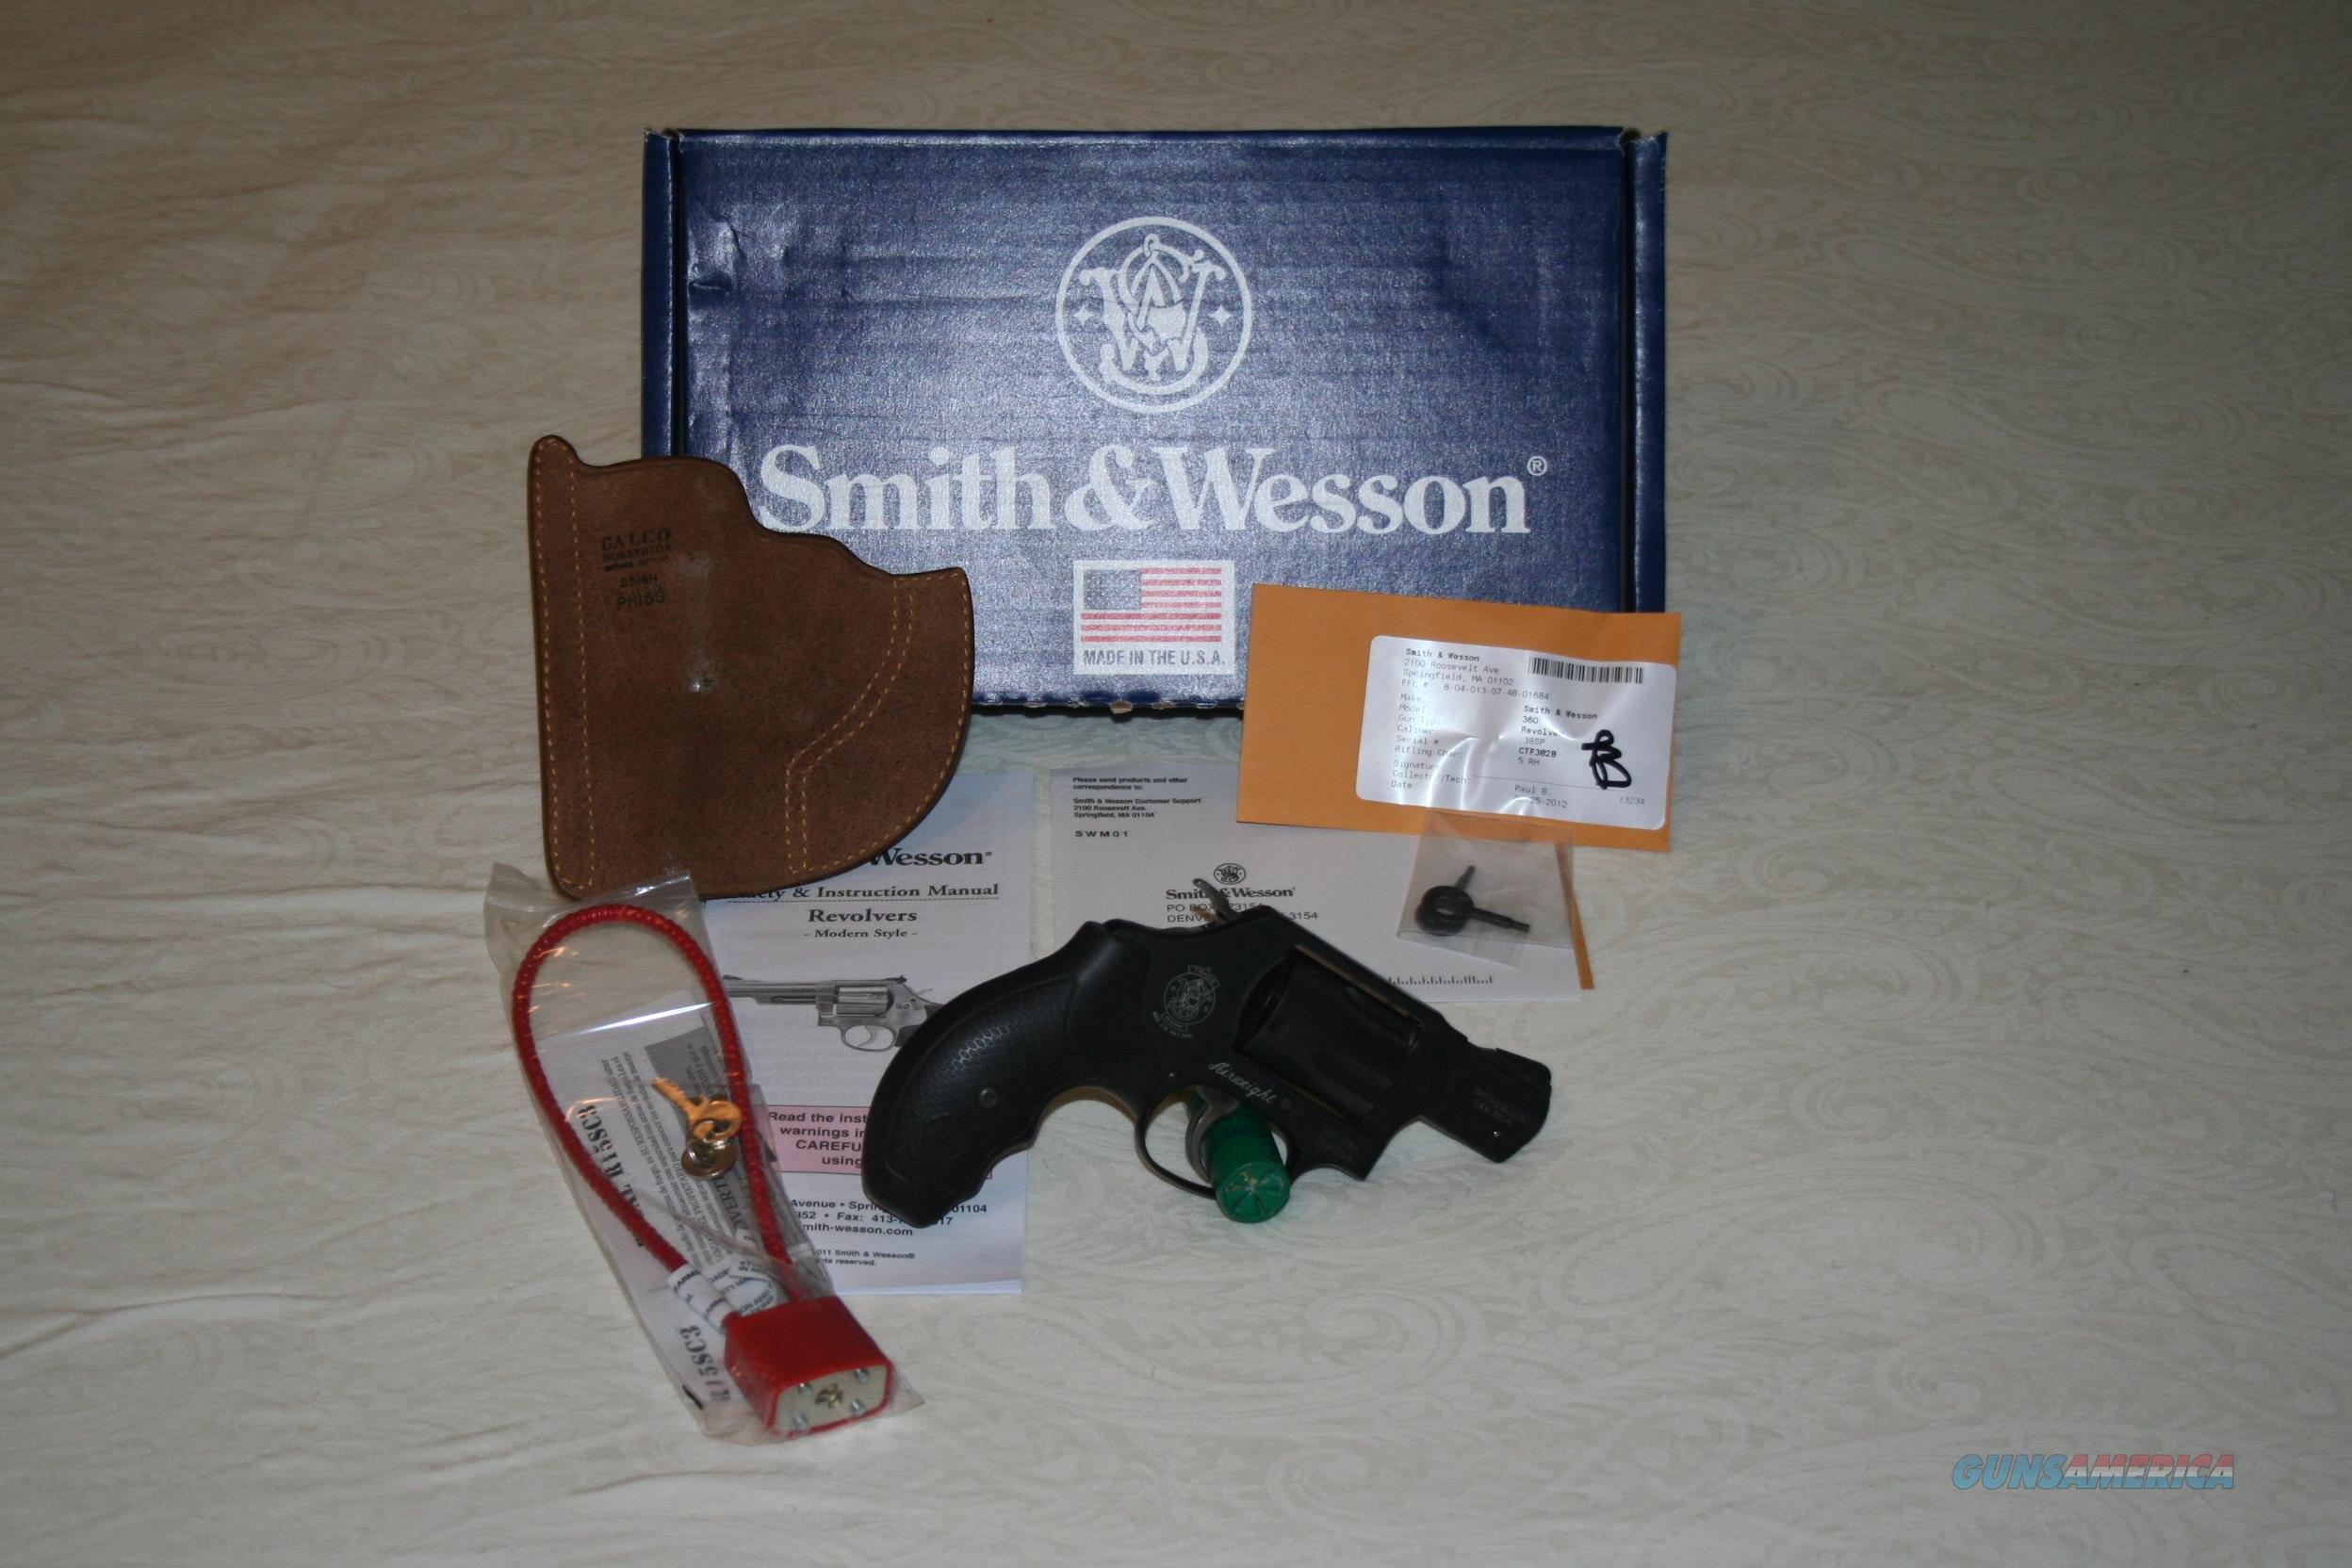 S&W Smith & Wesson .38 Special   Guns > Pistols > Smith & Wesson Revolvers > Pocket Pistols